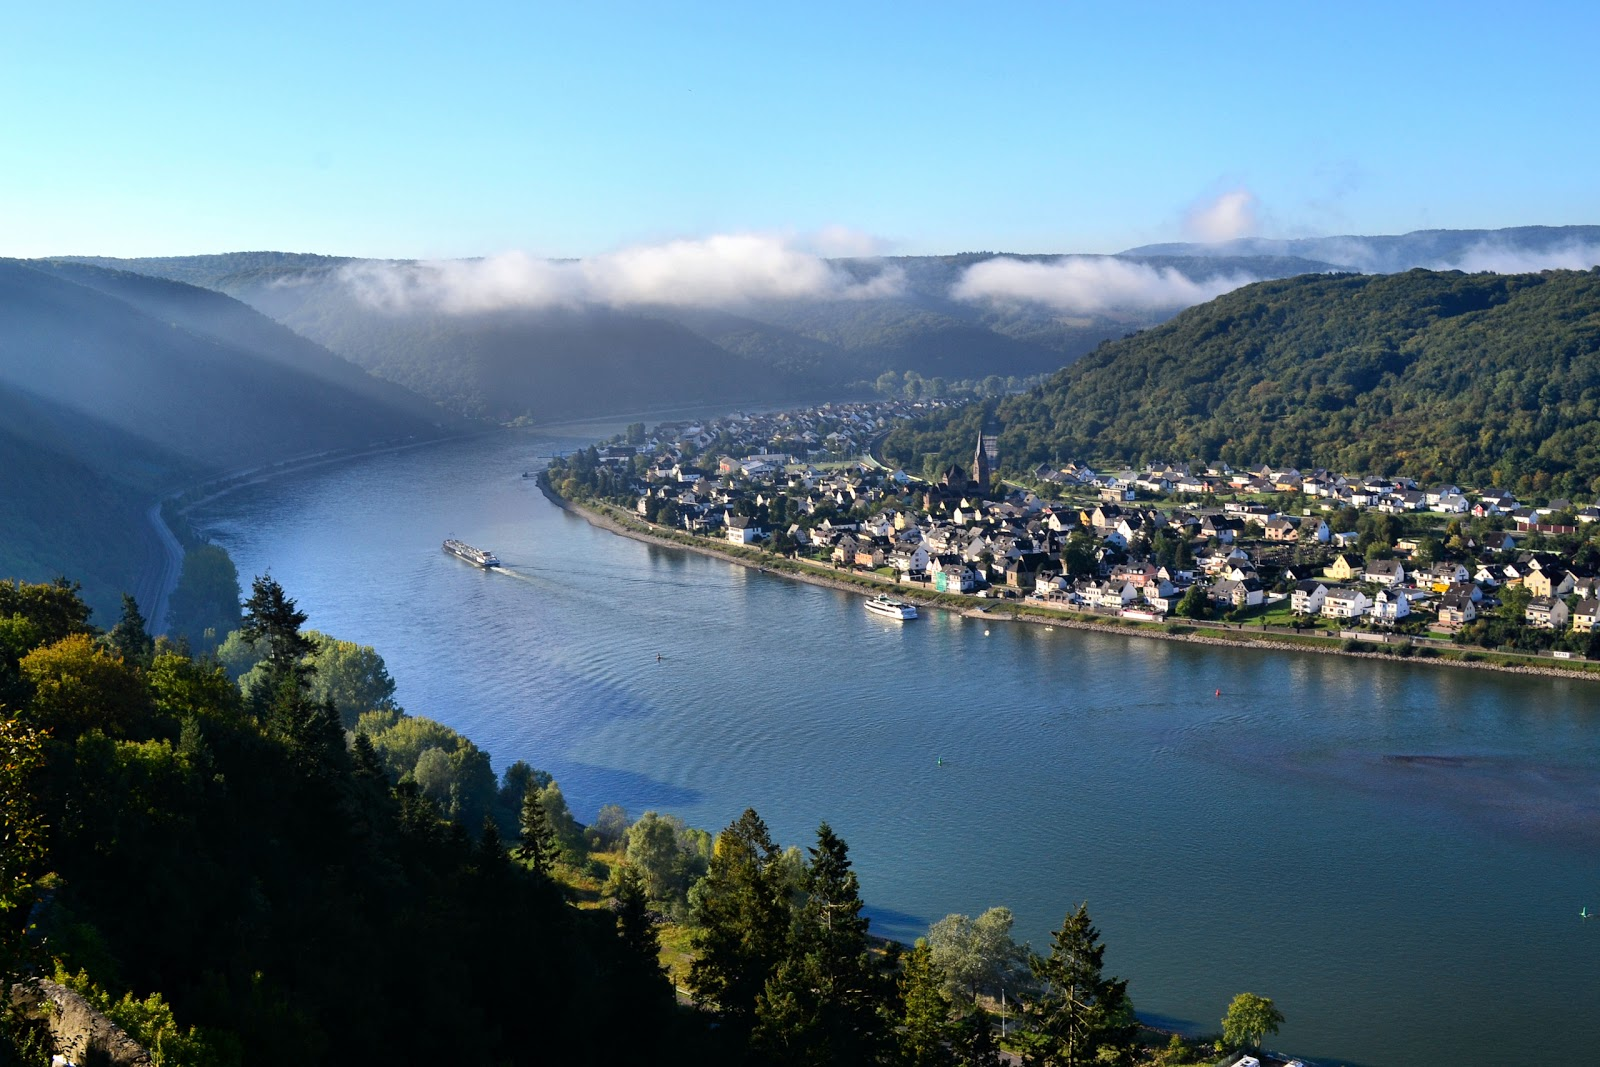 Strike out on an adventure along the Rhine River Valley! Photo: © EuroTravelogue.com. Unauthorized use is prohibited.